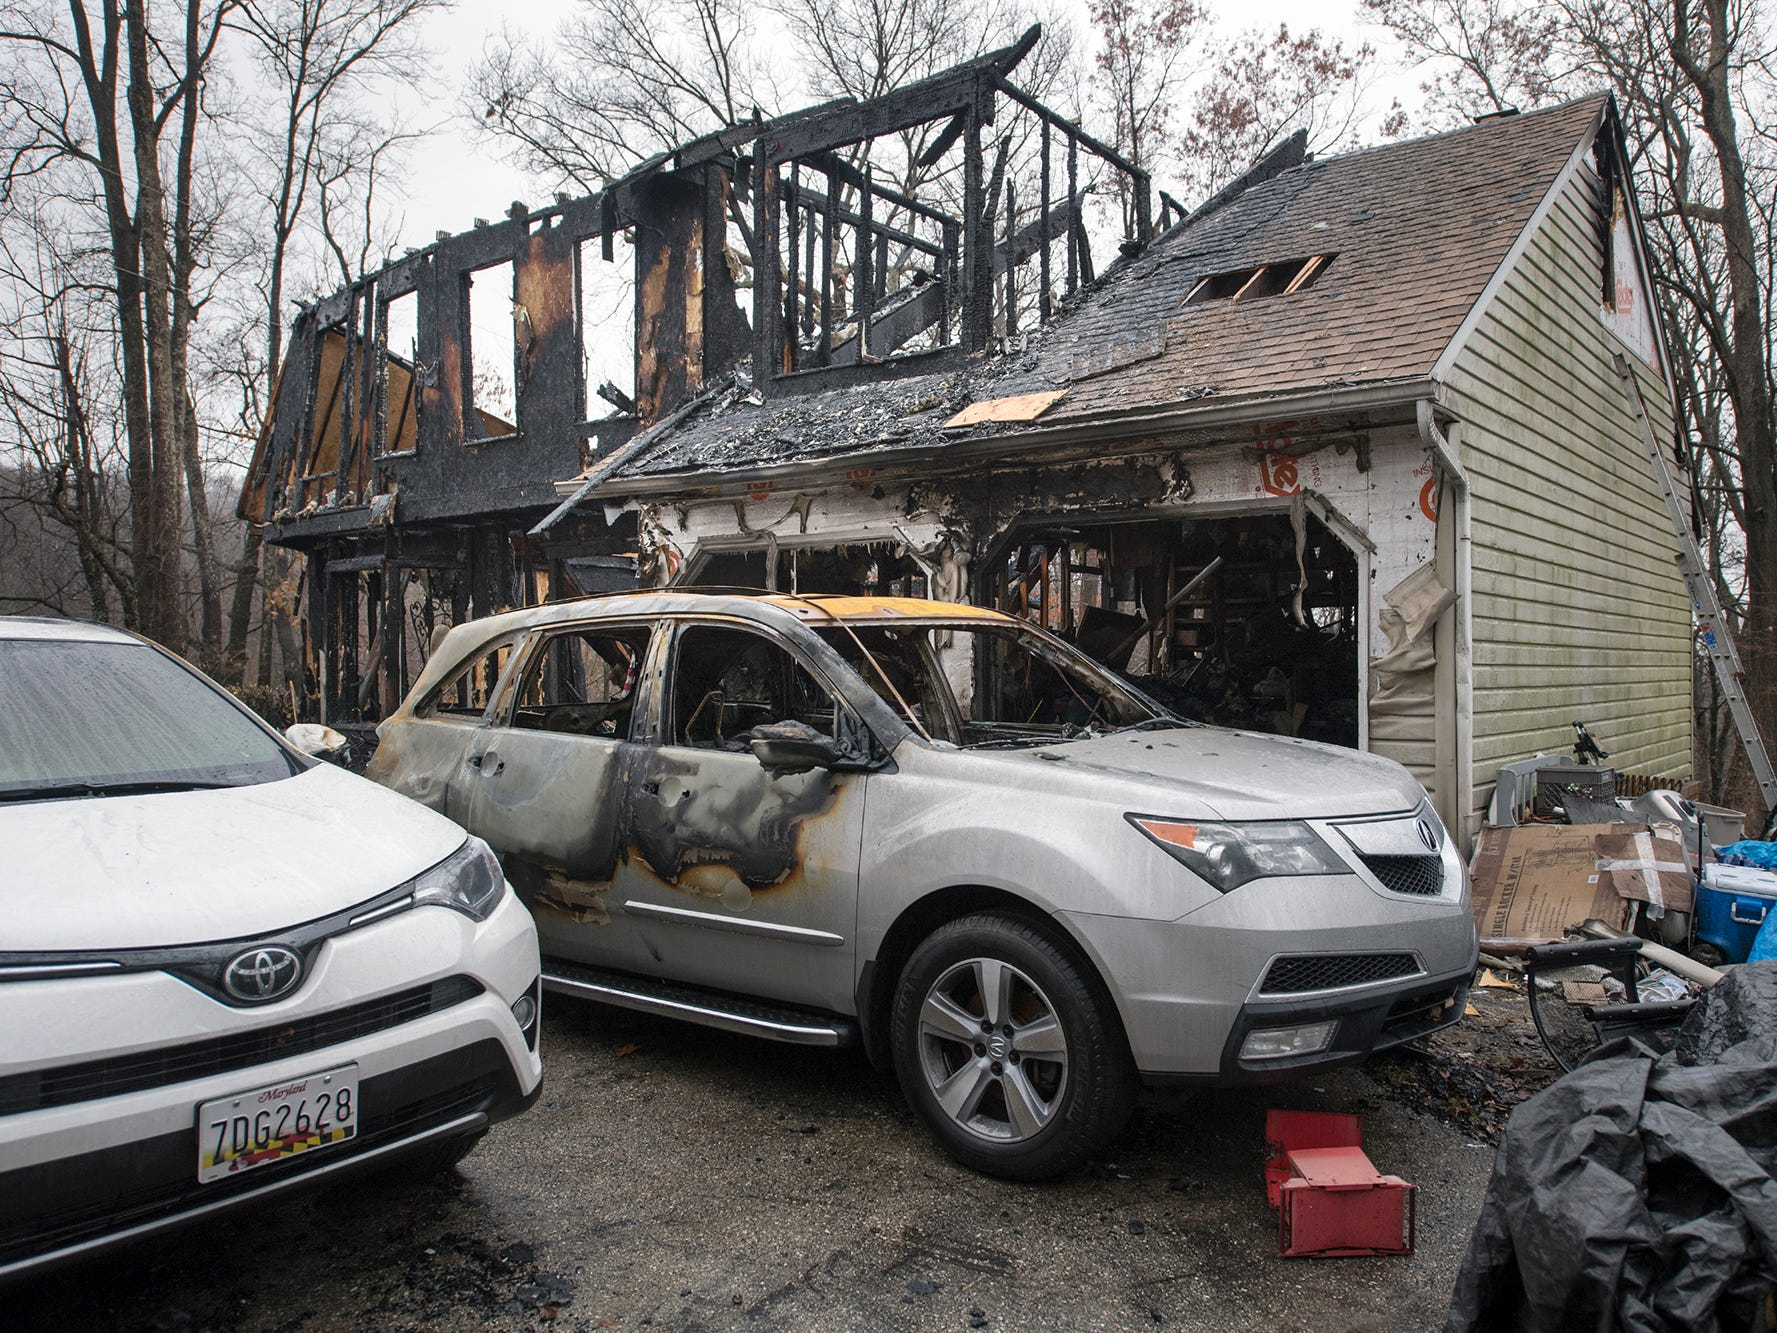 Two vehicles, one belonging to Michelle Herren and one Melissa Herren was renting after her car had sustained $6,000 damage from a deer strike, were destroyed during the Shrewsbury Township fire.